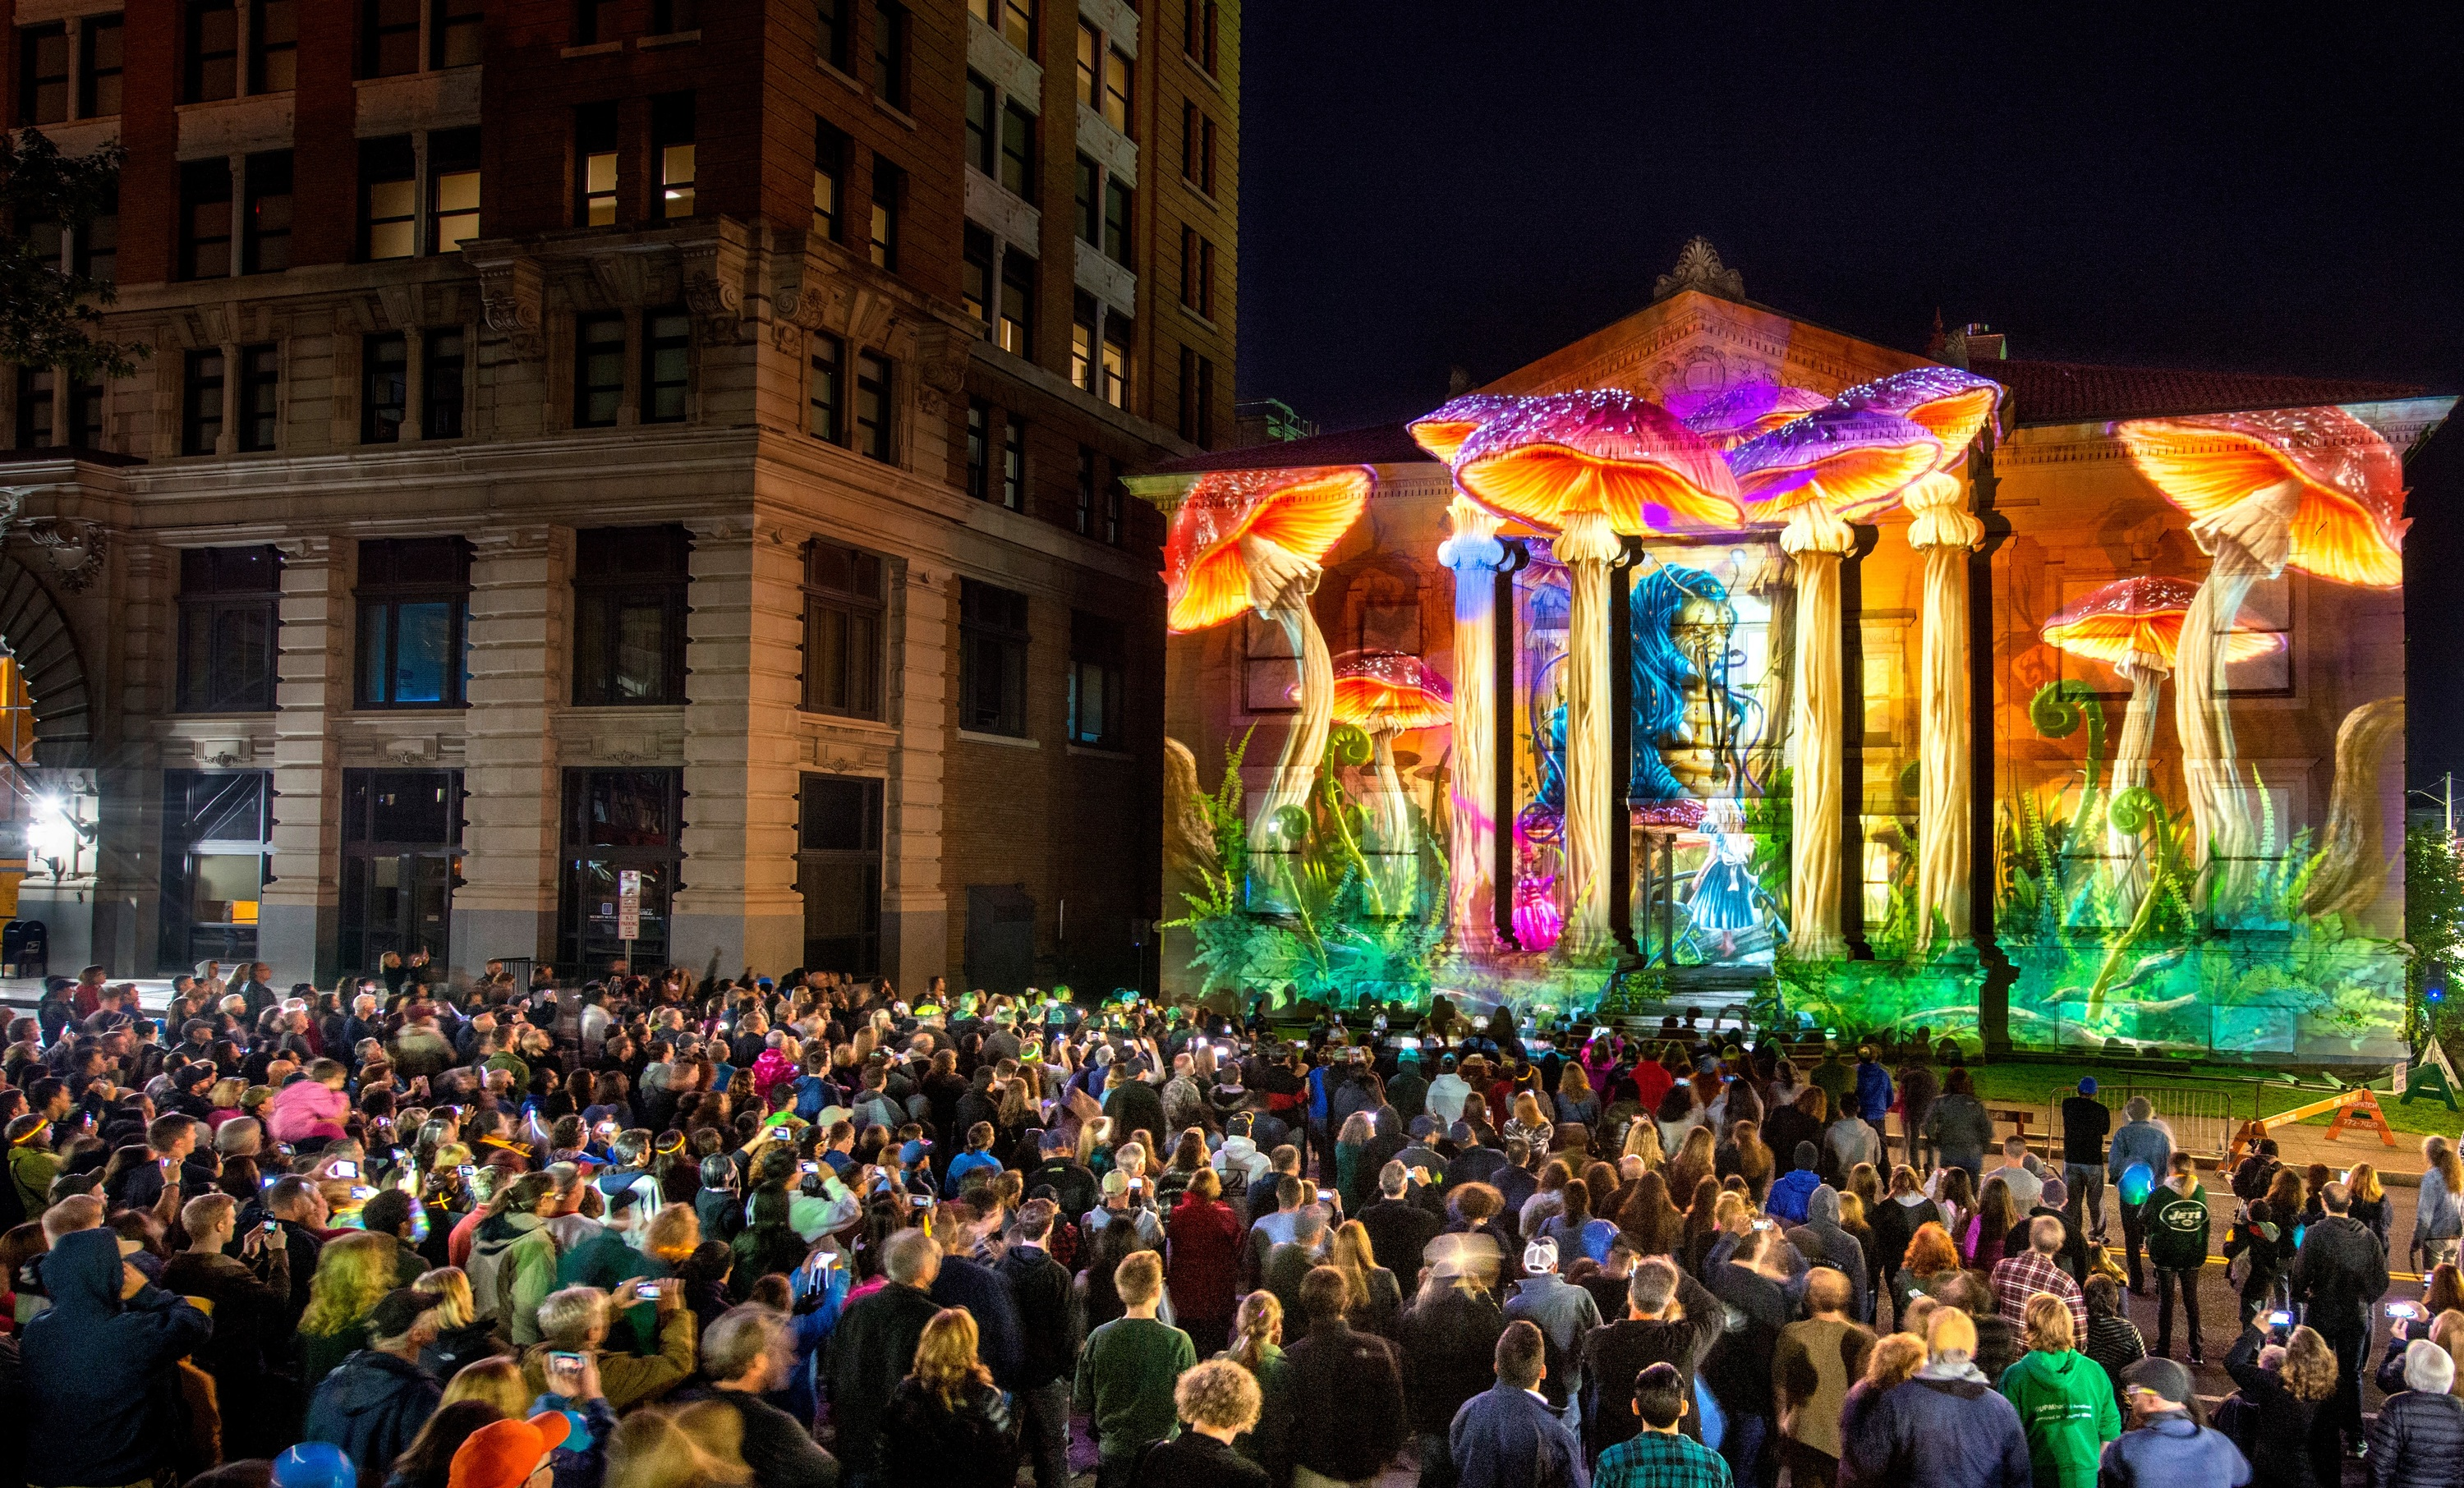 See 3D projections take over an entire downtown area in upstate New York next month